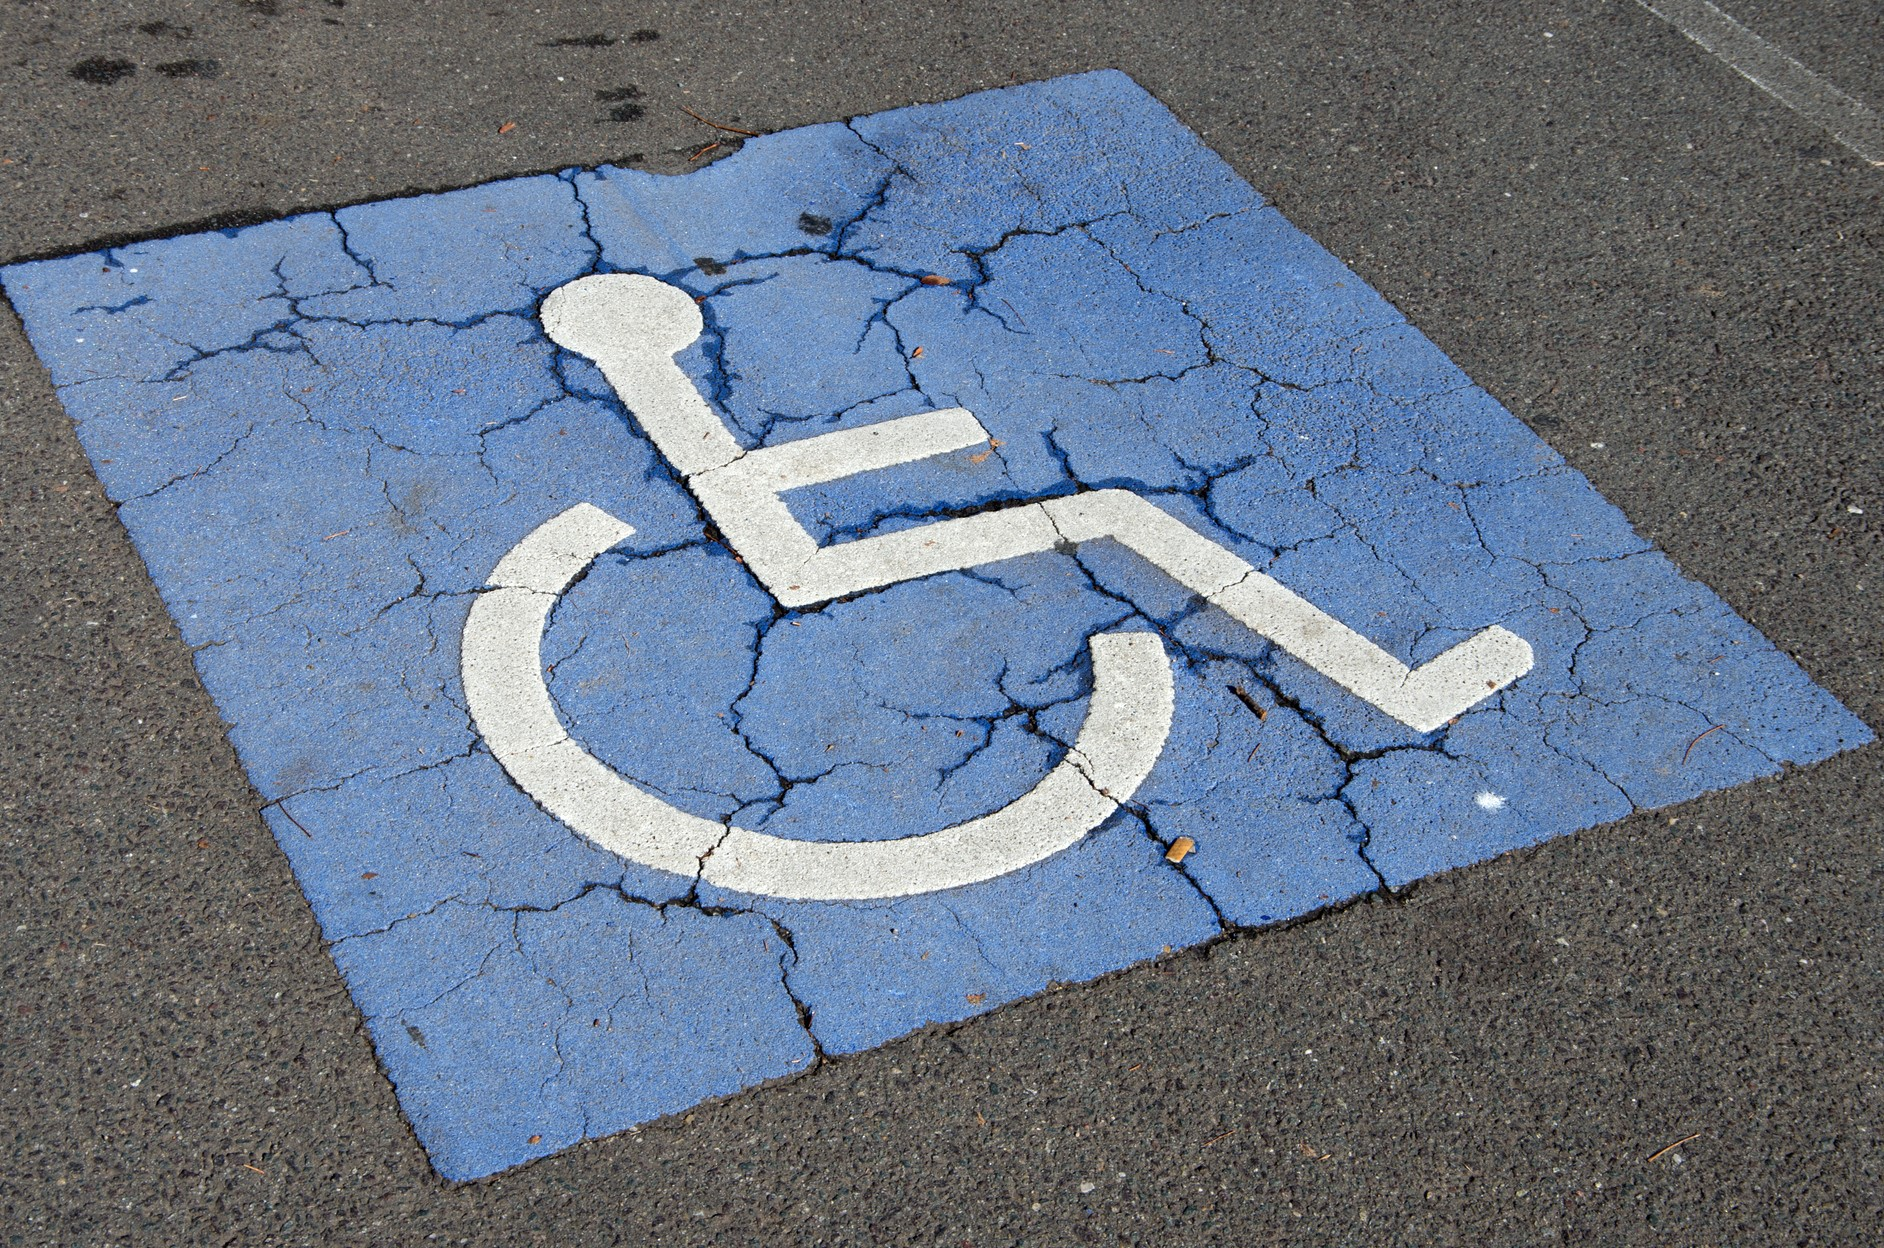 Push for drivers who illegally park in disabled parks to lose demerit points